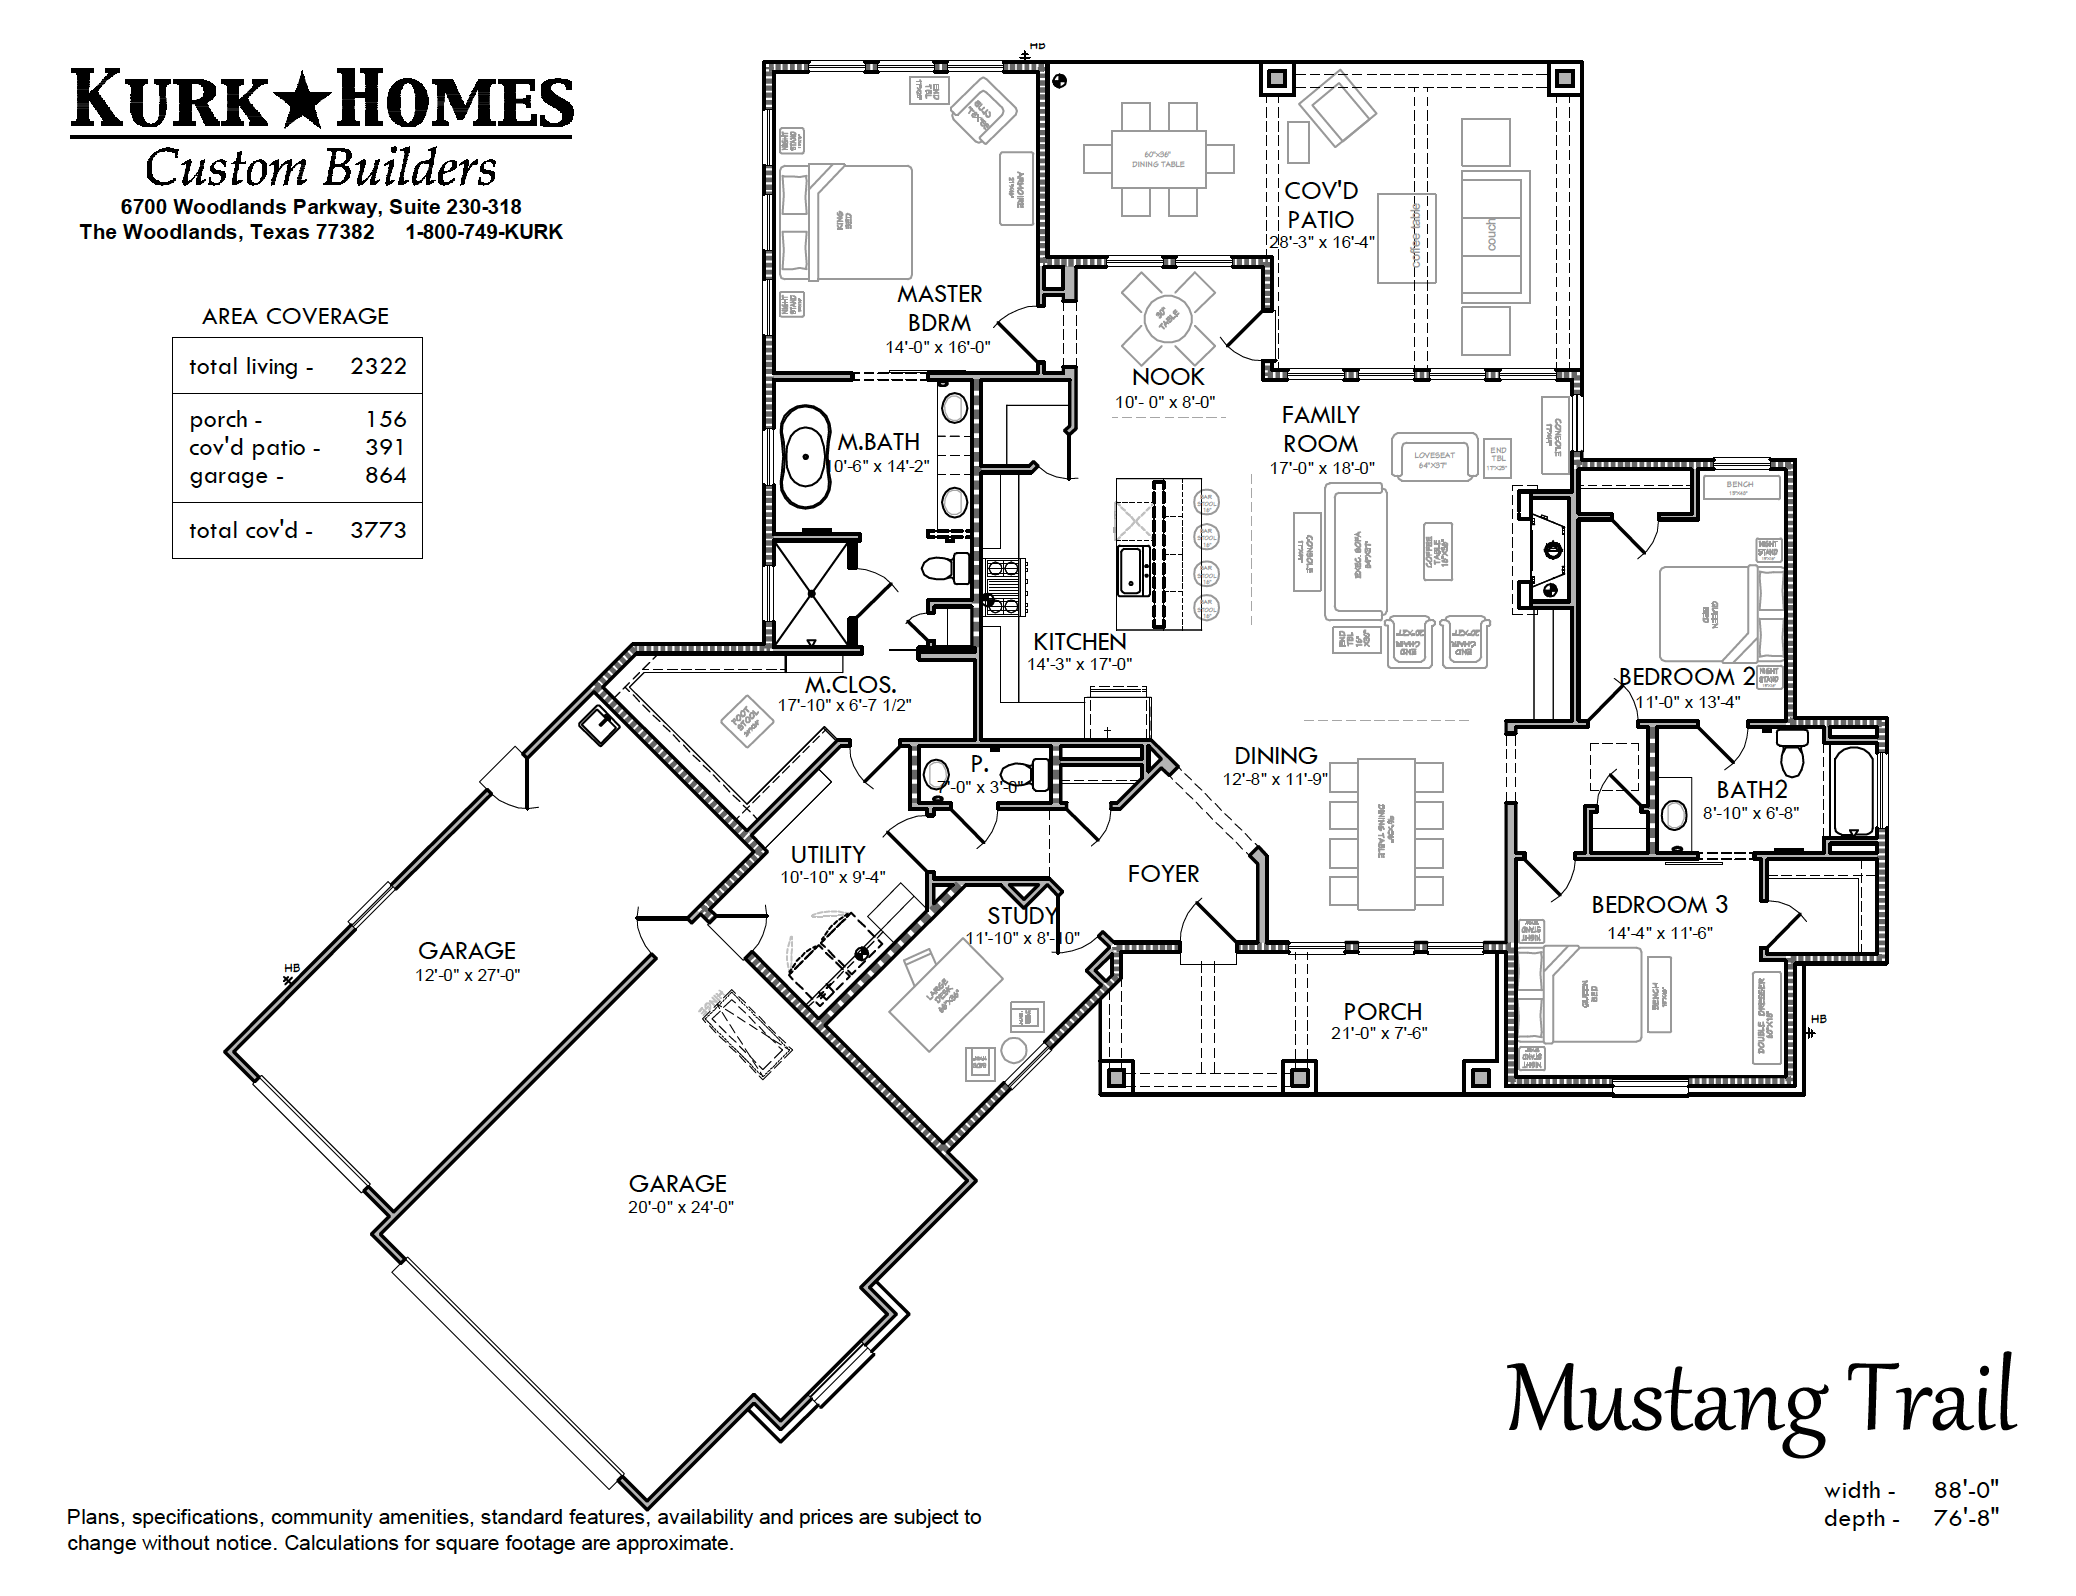 Home Design: A Step-By-Step Guide to Your Custom Home Design